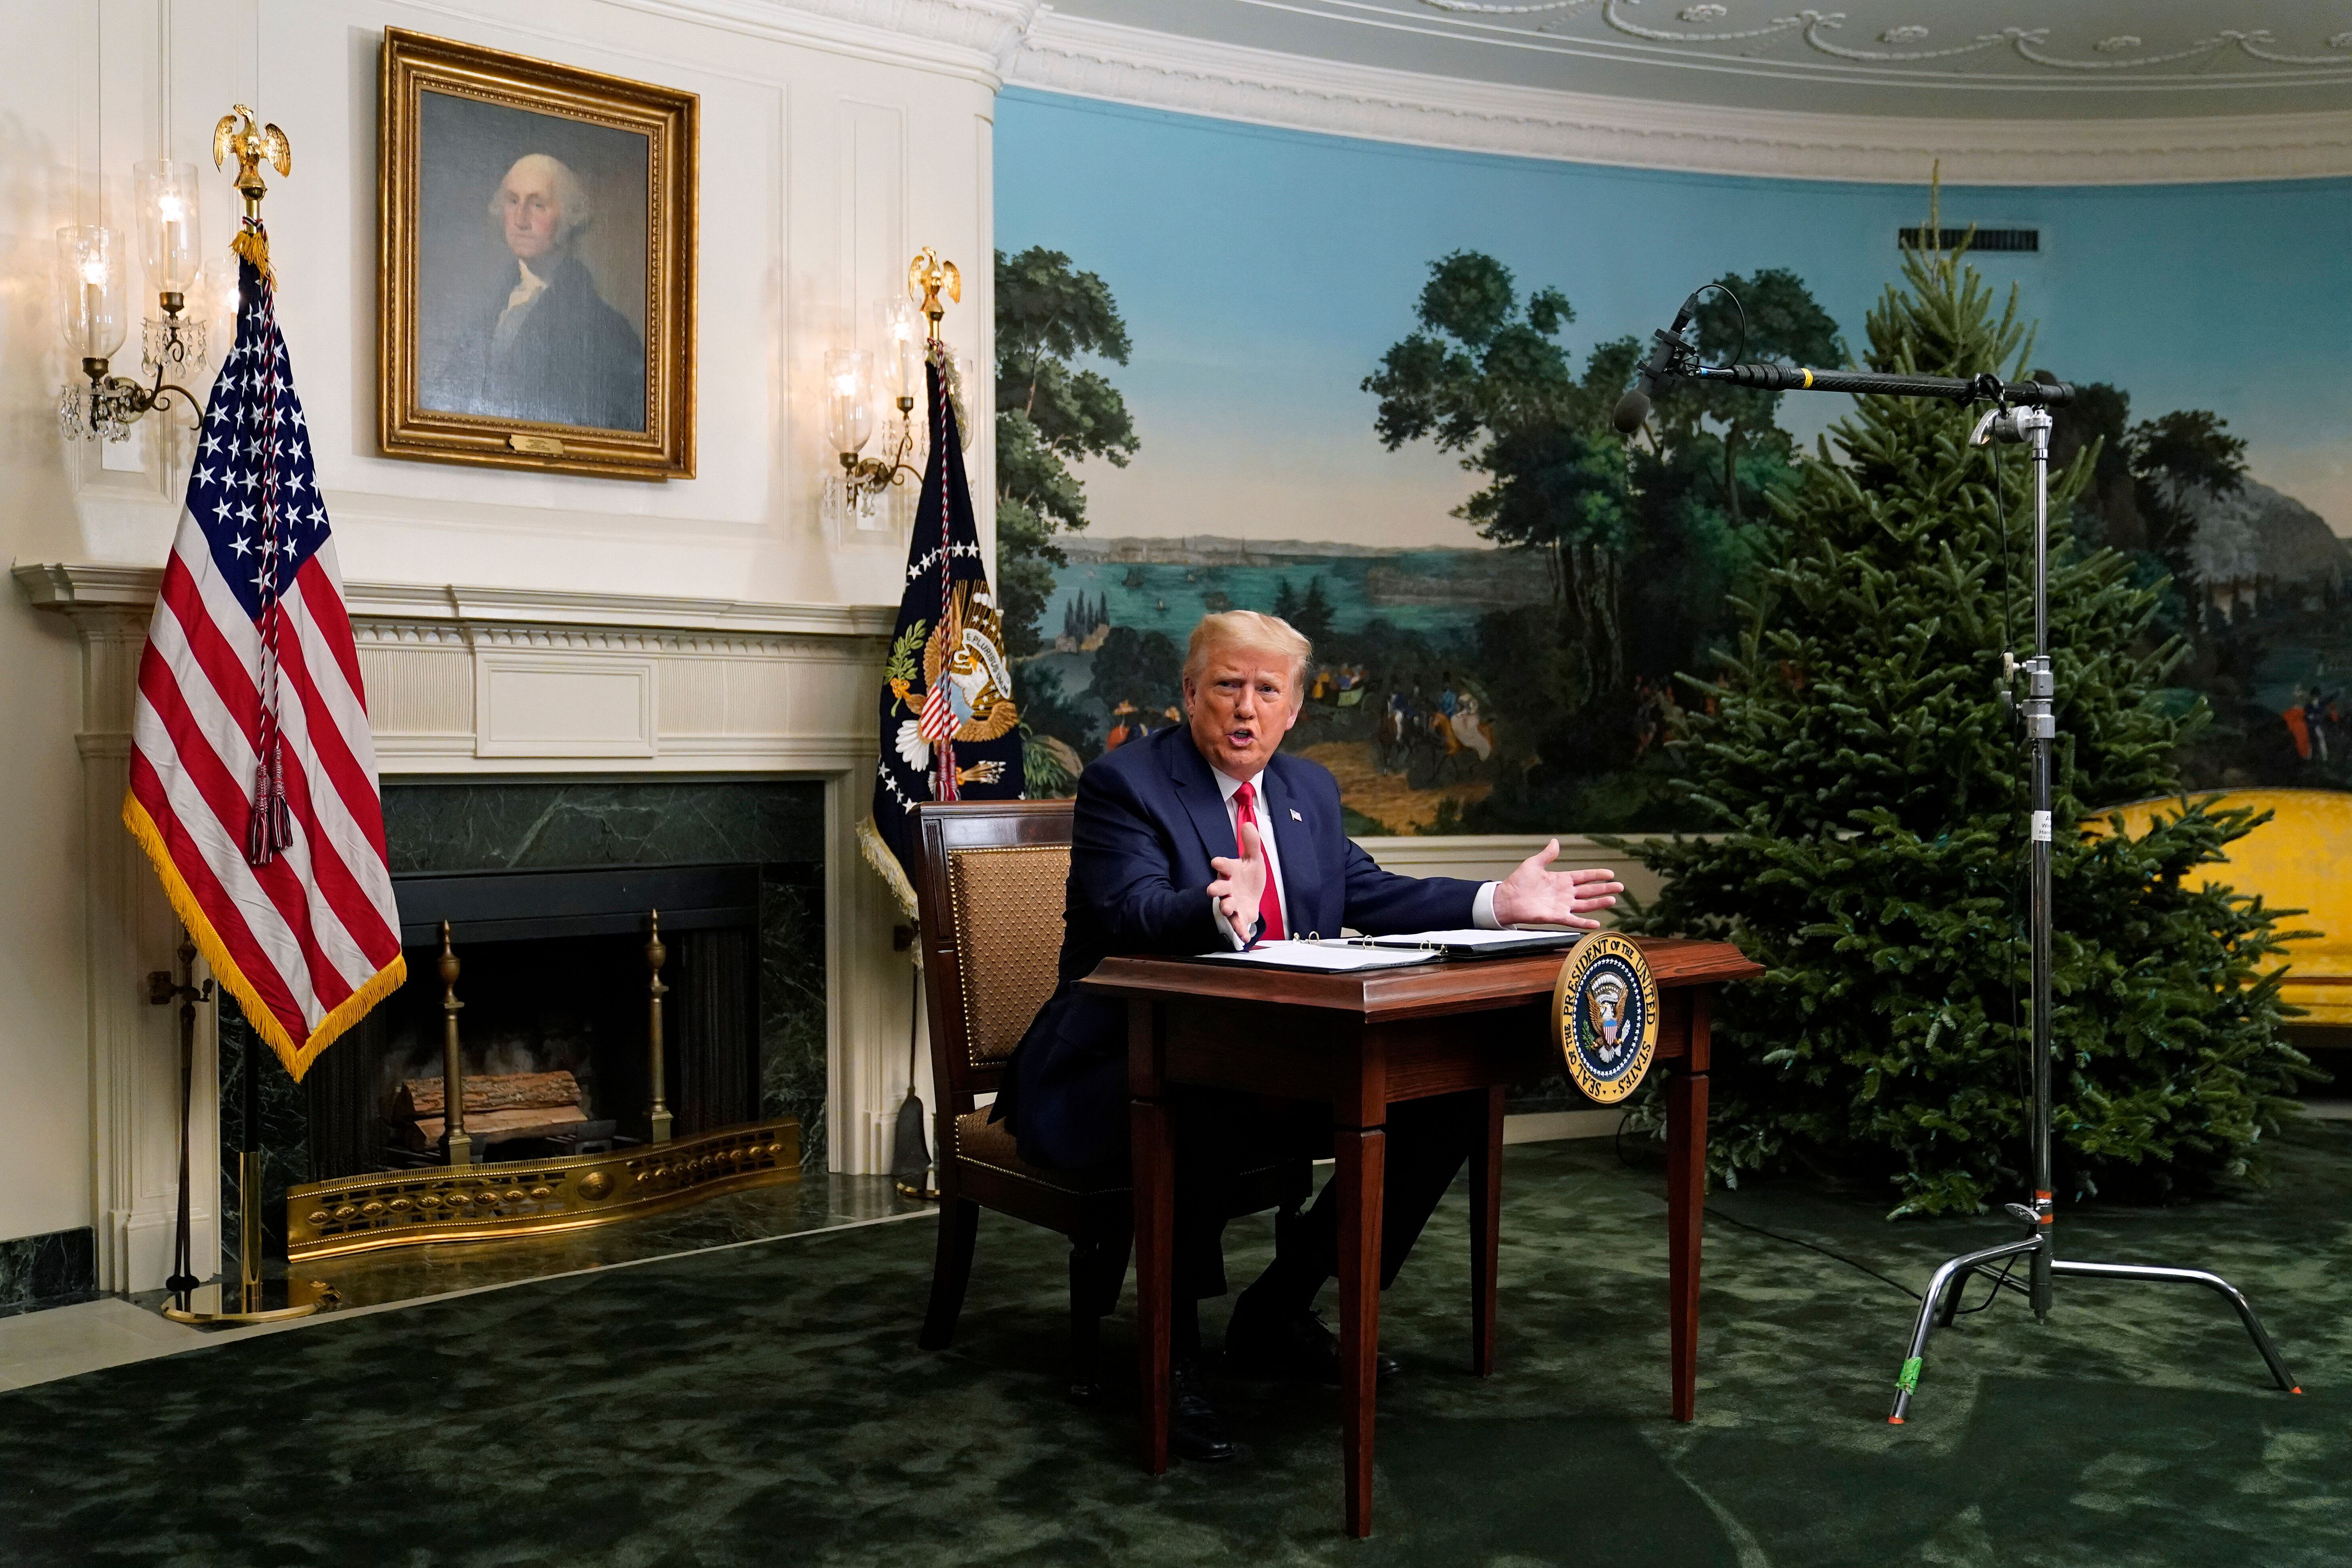 President Donald Trump spoke with reporters following a video chat with members of the military and the tiny desk he sat at b